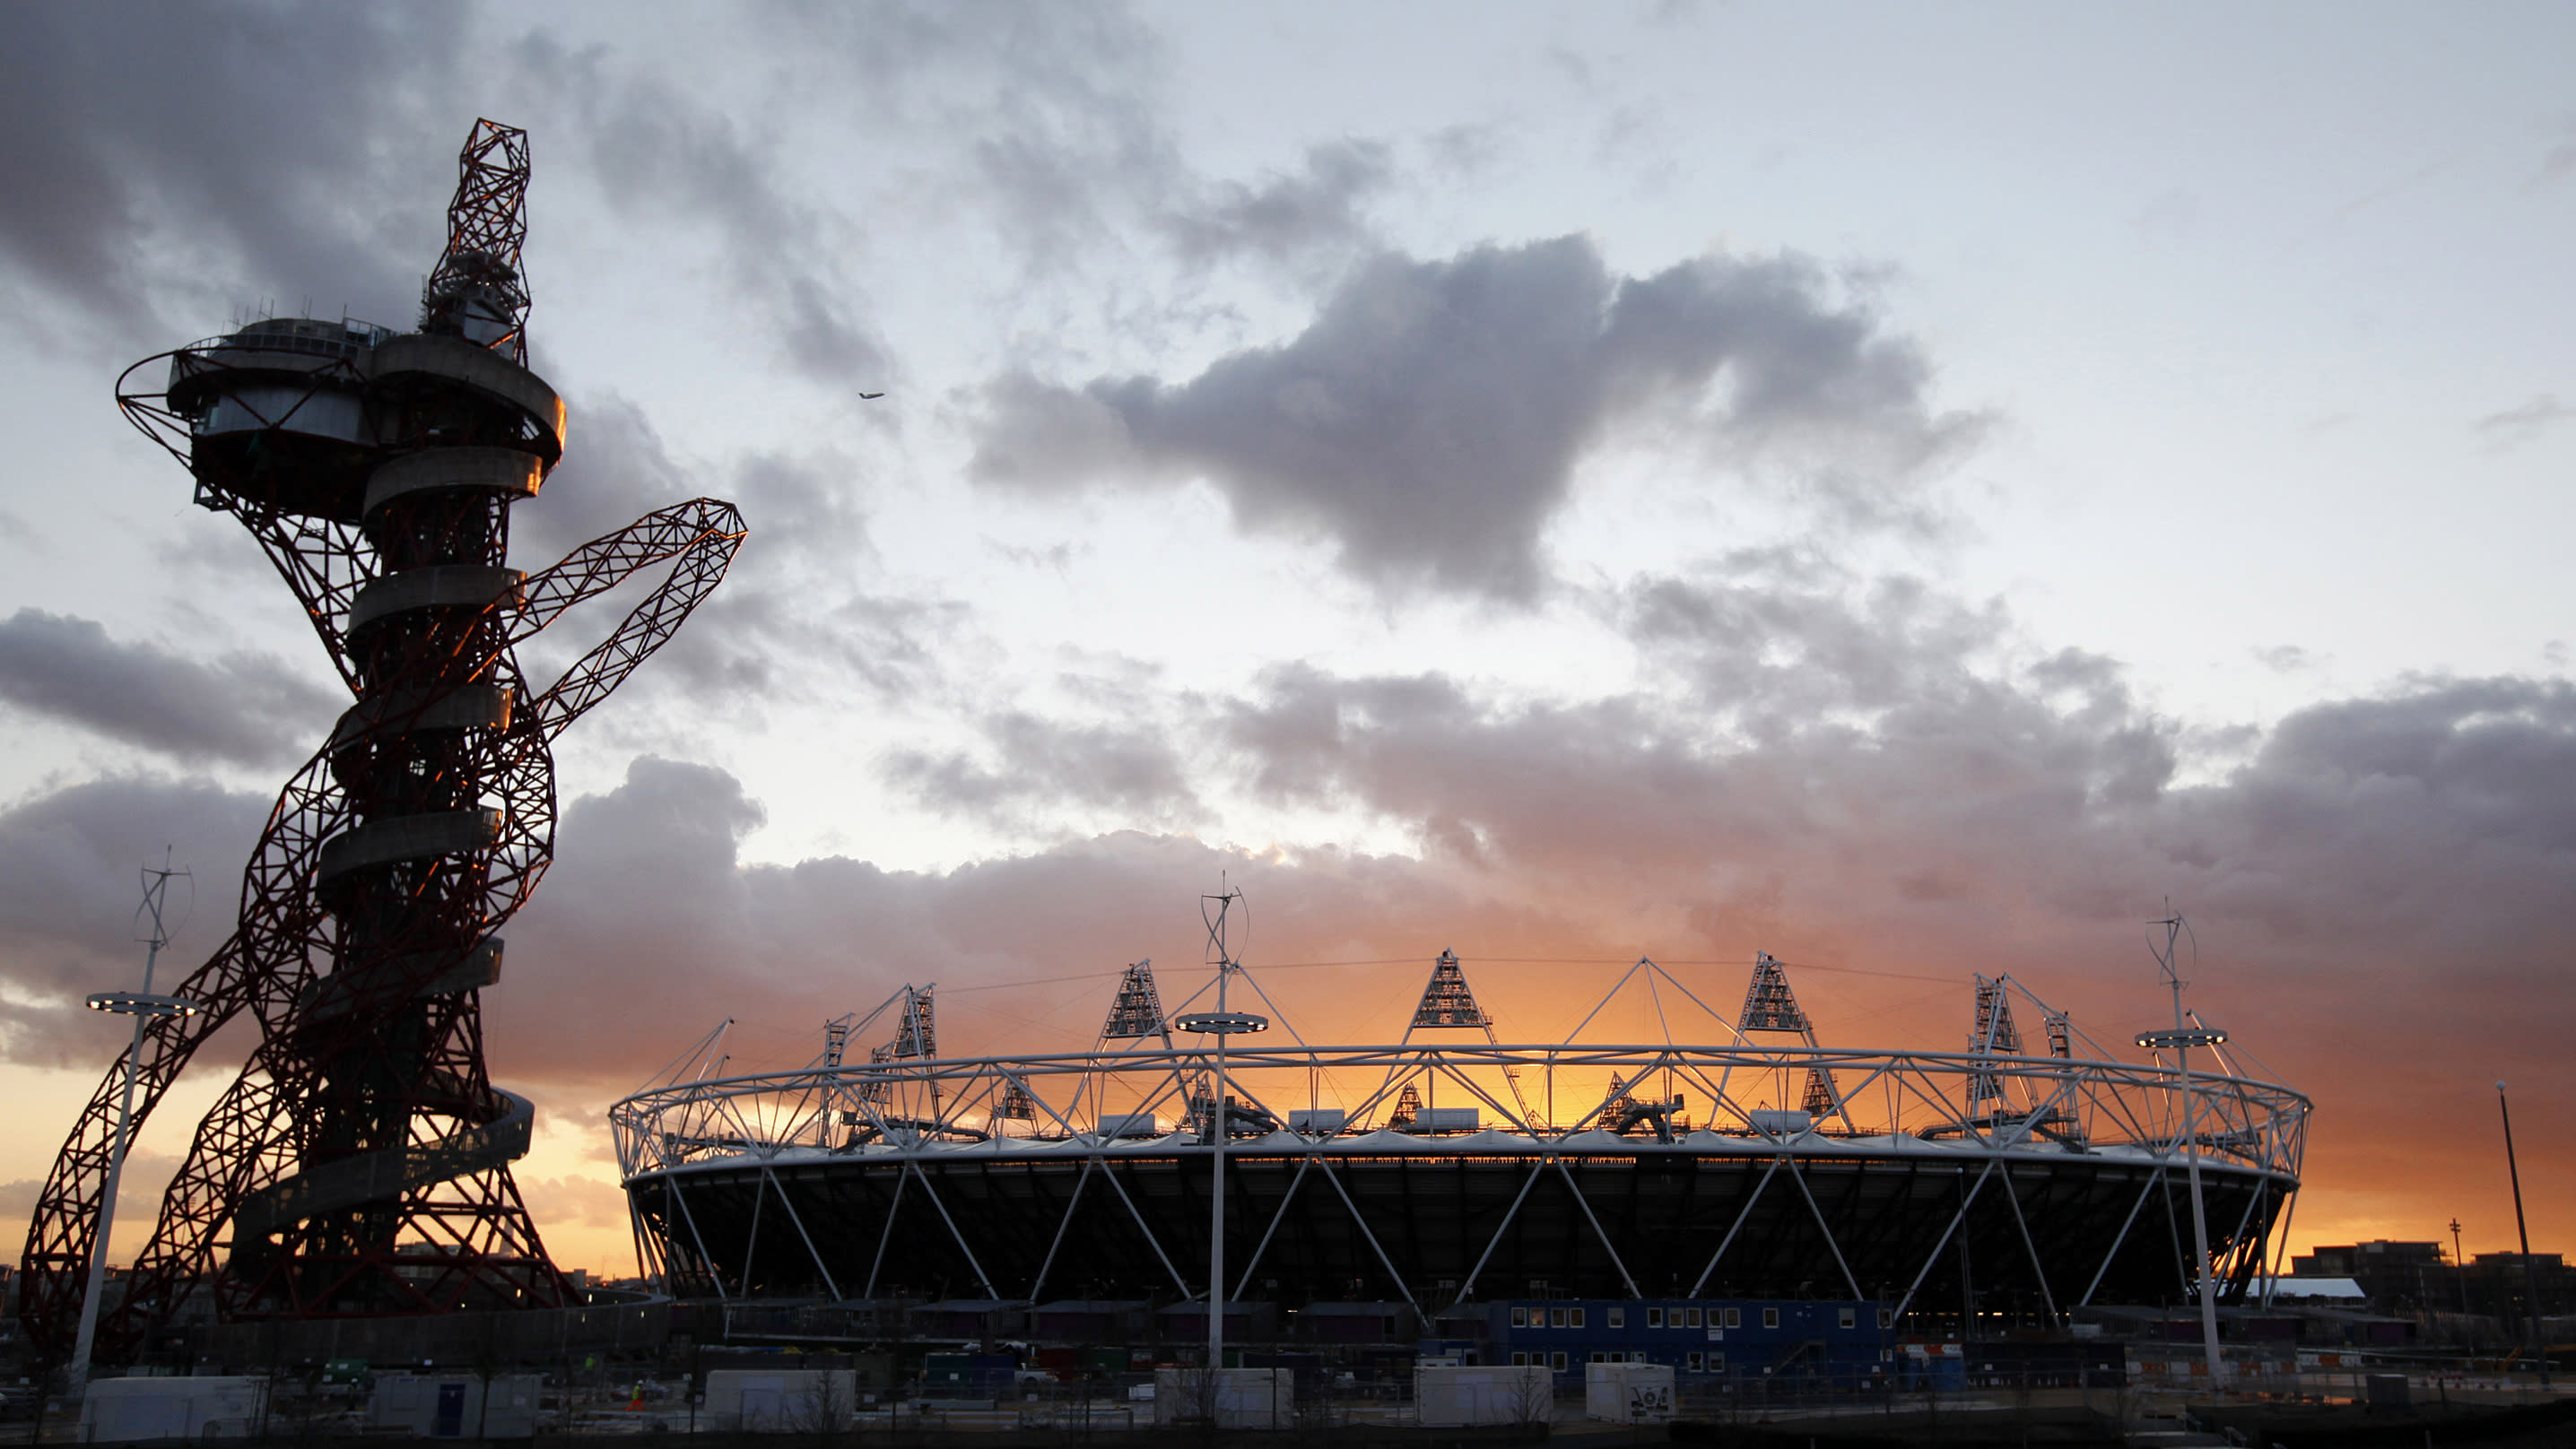 Report: MLB could play a series of games in London as early as 2017